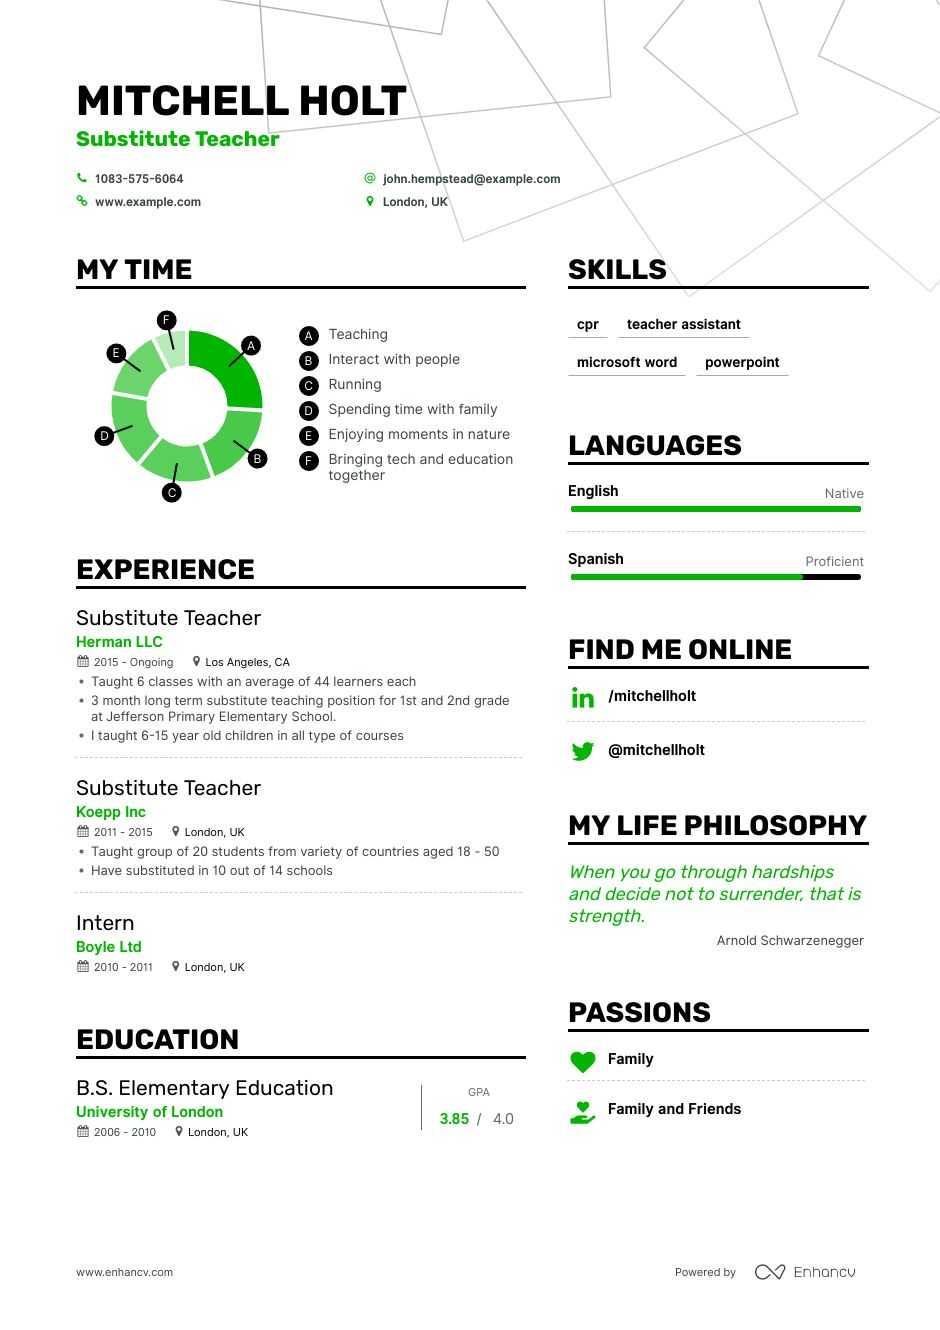 substitute teacher resume example for enhancv objective dob welder on demi chef Resume Substitute Teacher Resume Objective